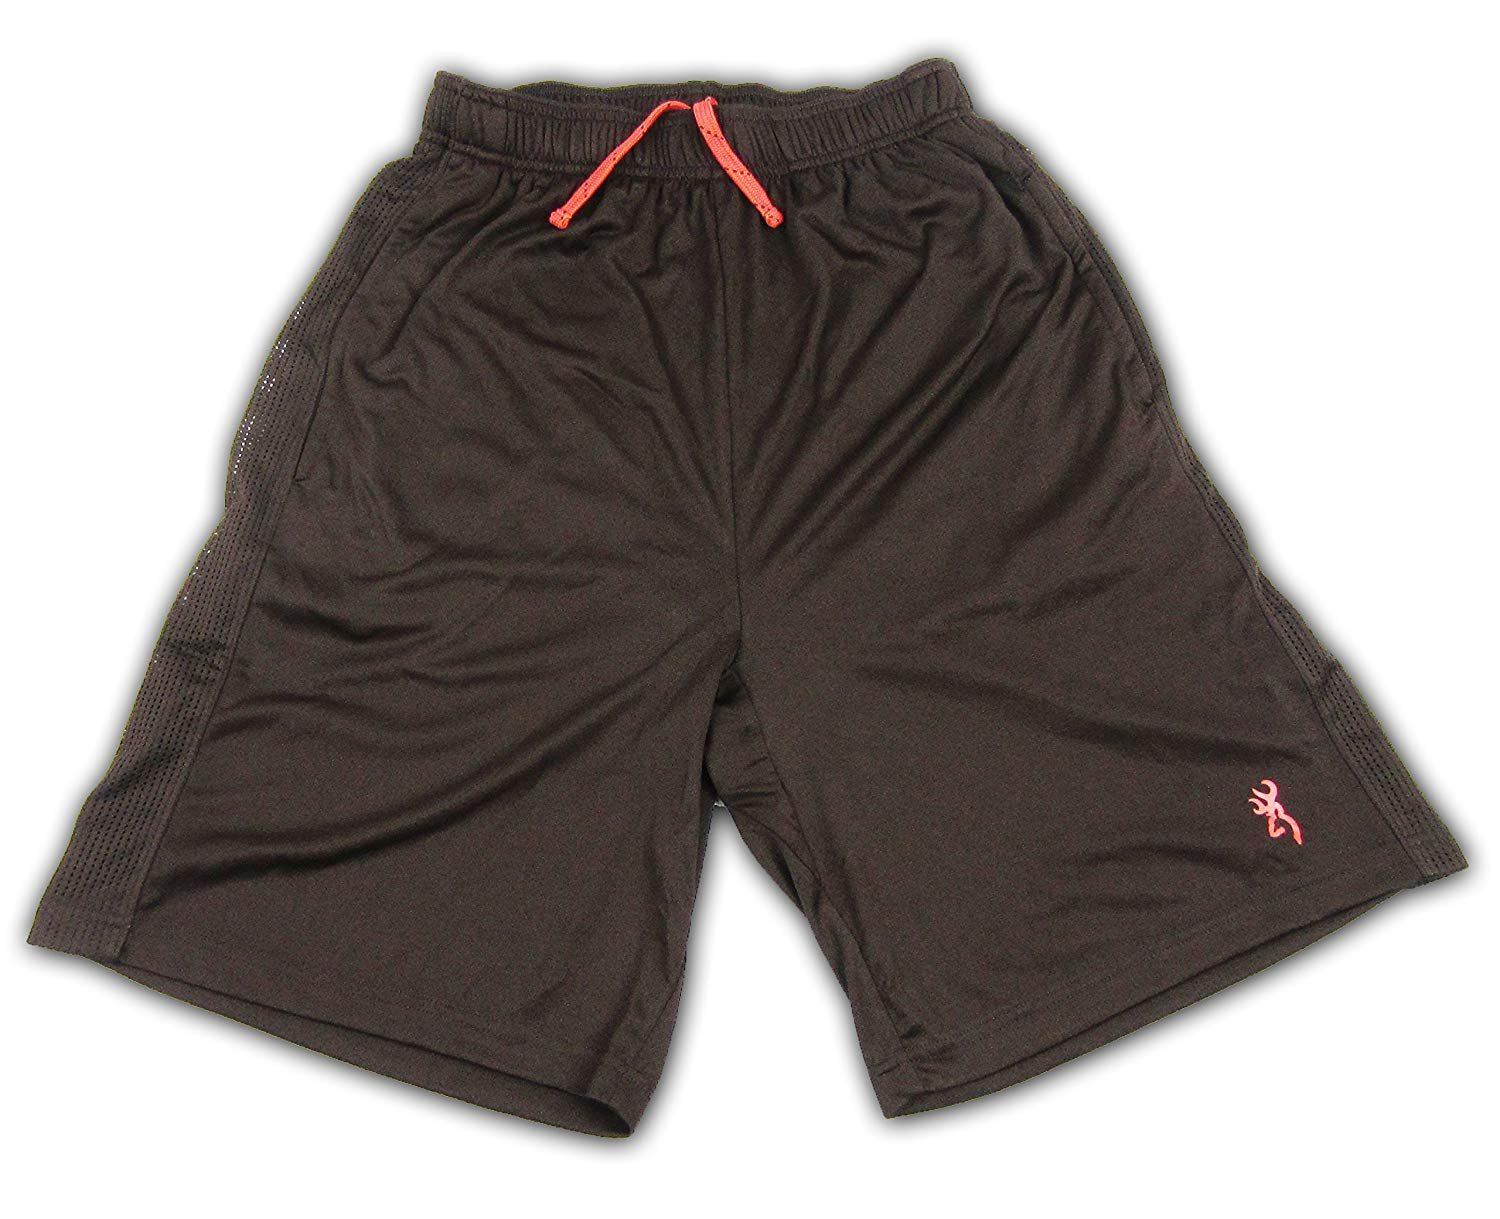 Browning Mens Snare Shorts Timber Brown with Camo Performance Basketball Shorts